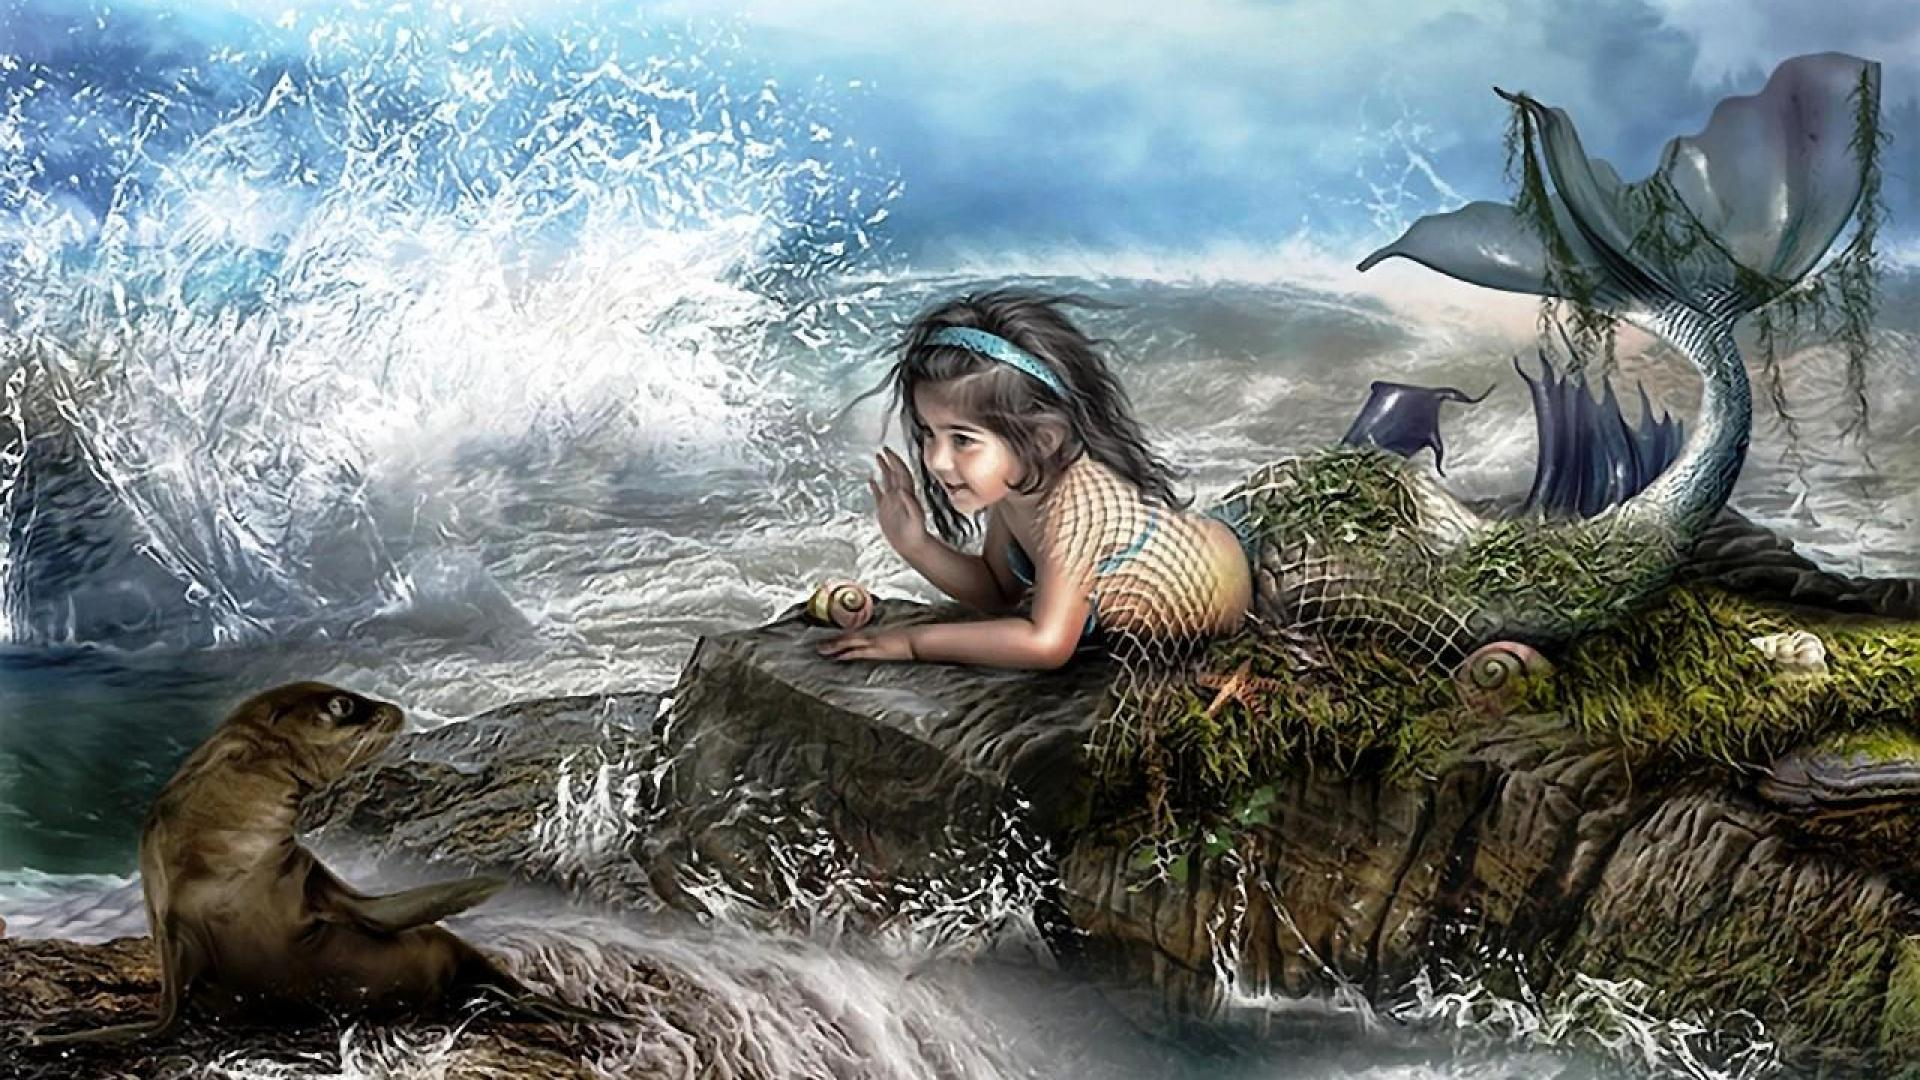 free fantasy mermaid wallpaper download the wallpaper